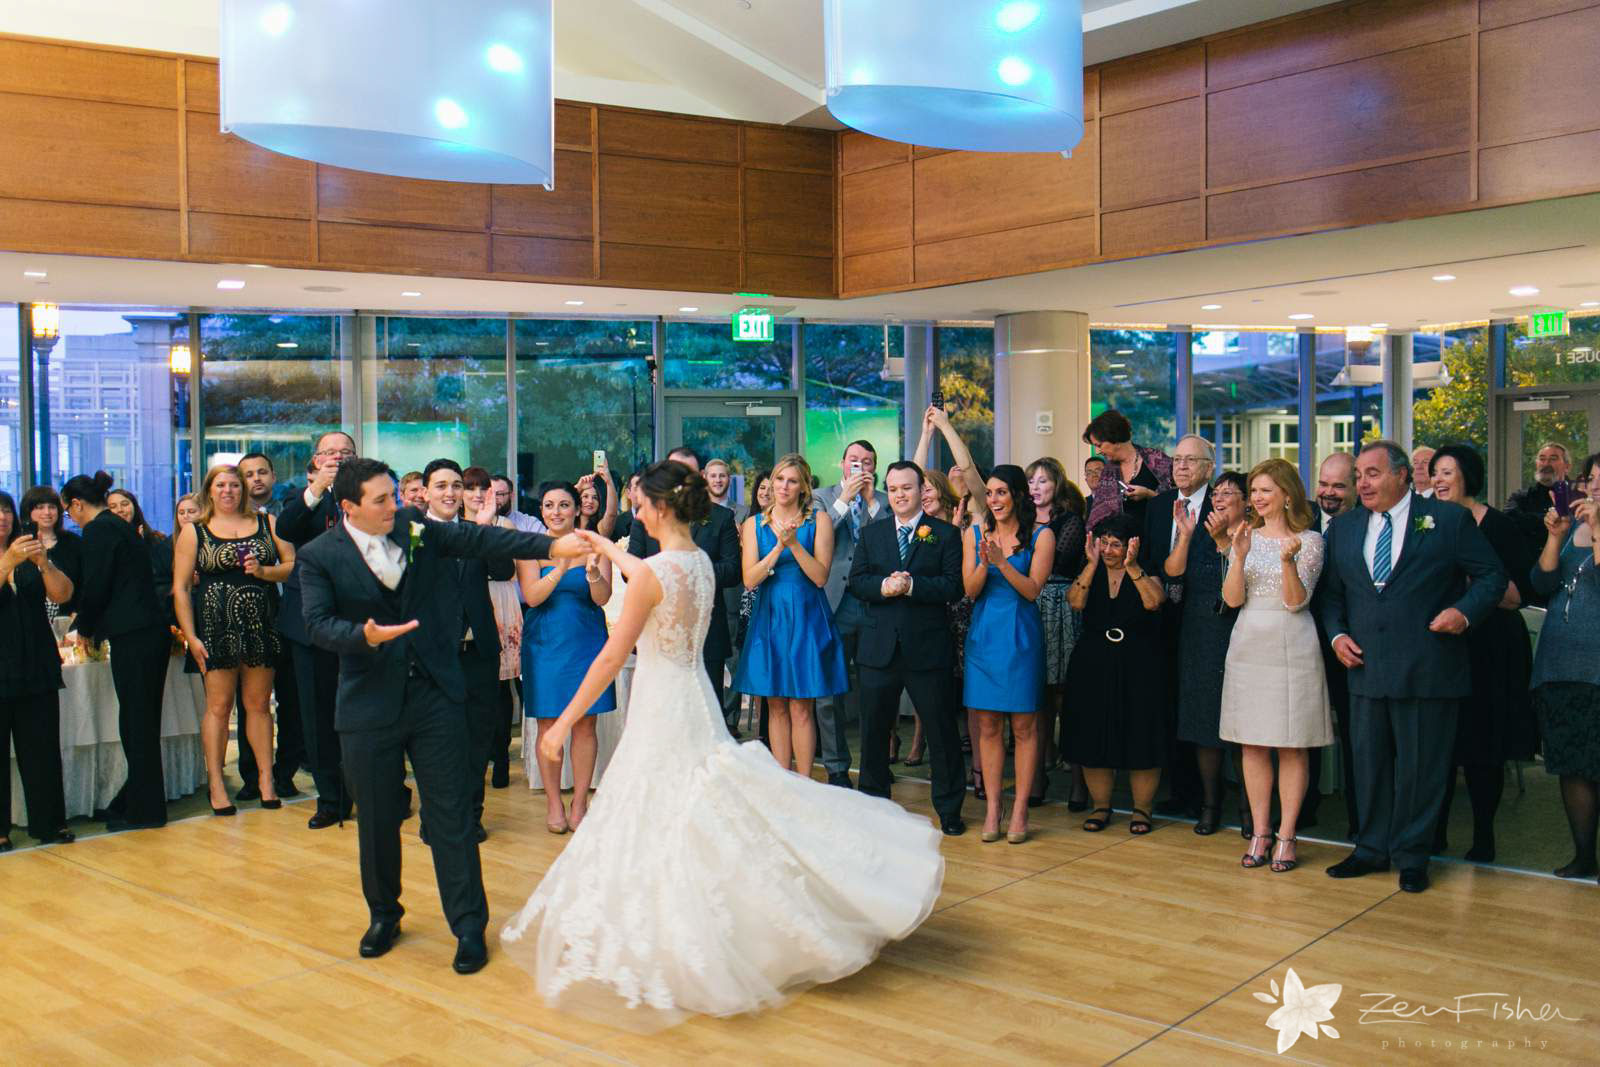 Groom spins bride during first dance, bride's dress spinning, wedding guests watching first dance